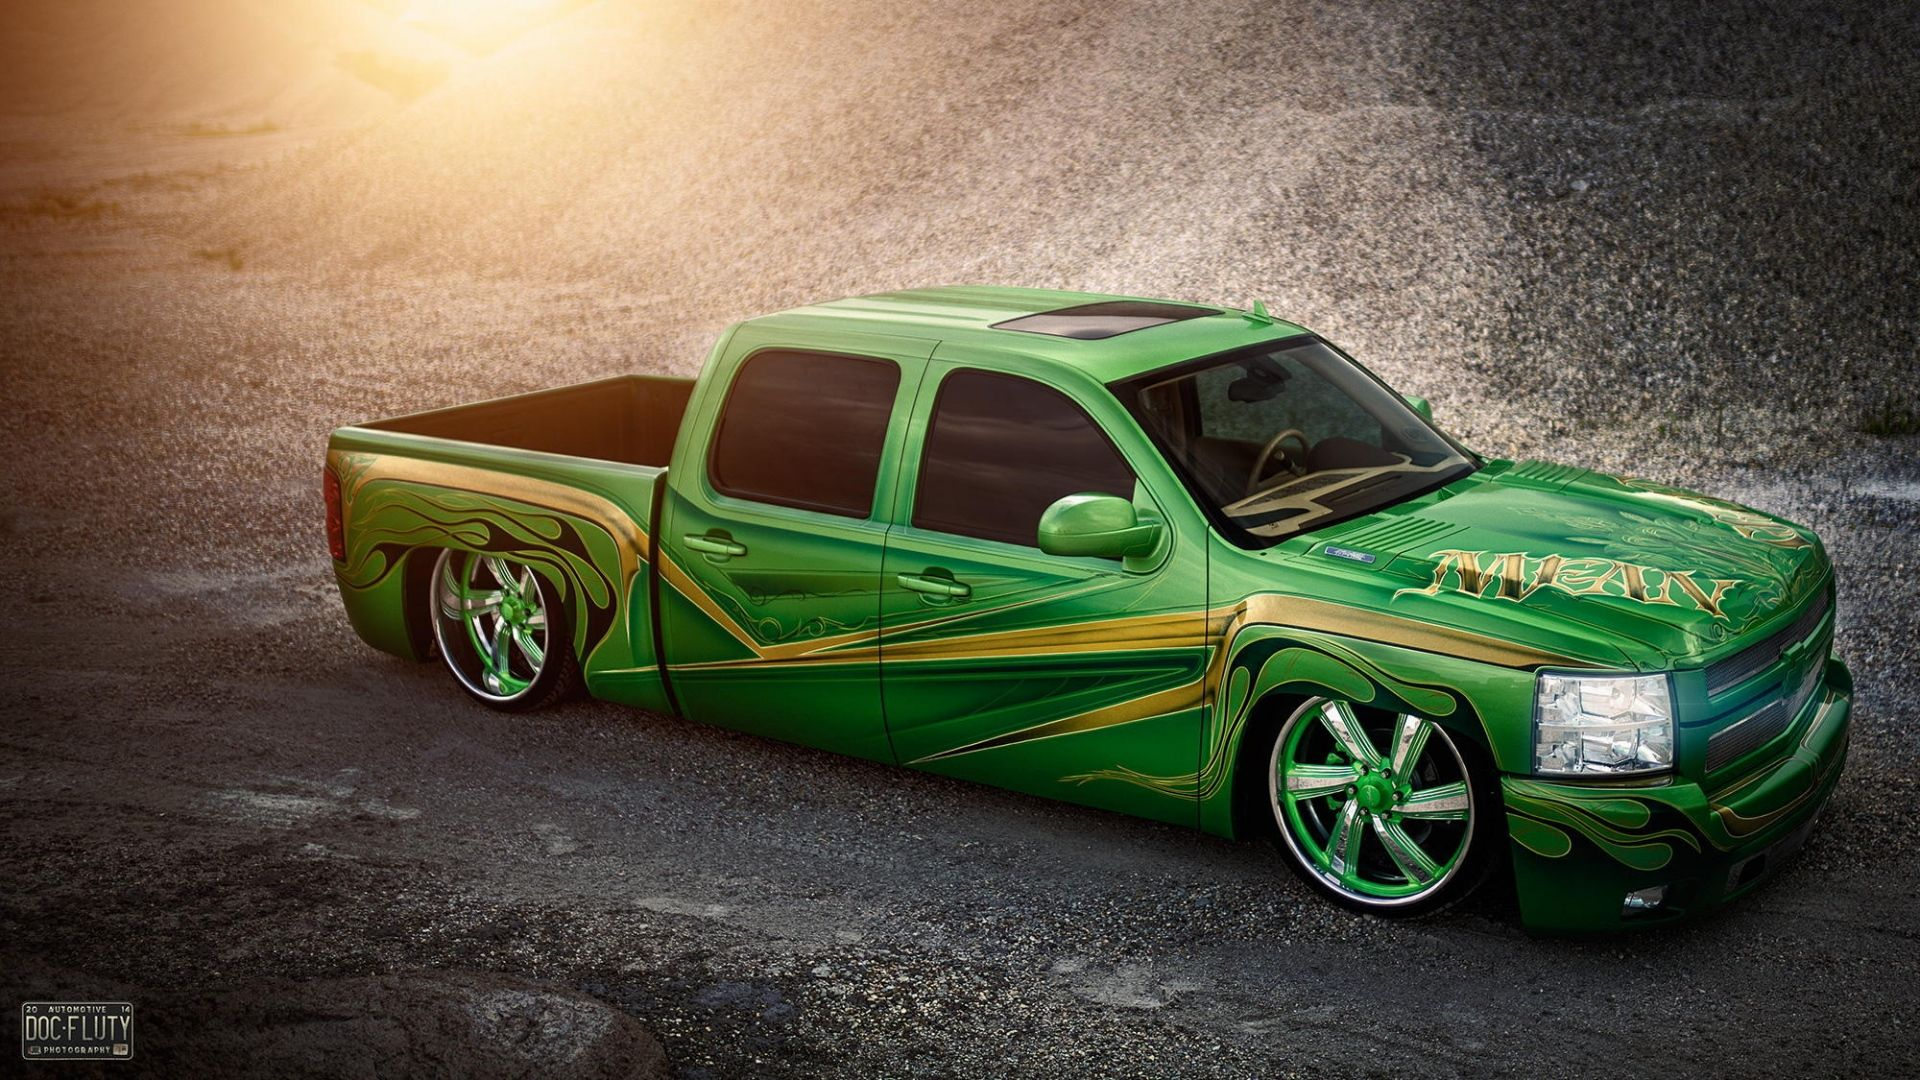 Lowrider Wallpapers Android Apps On Google Play